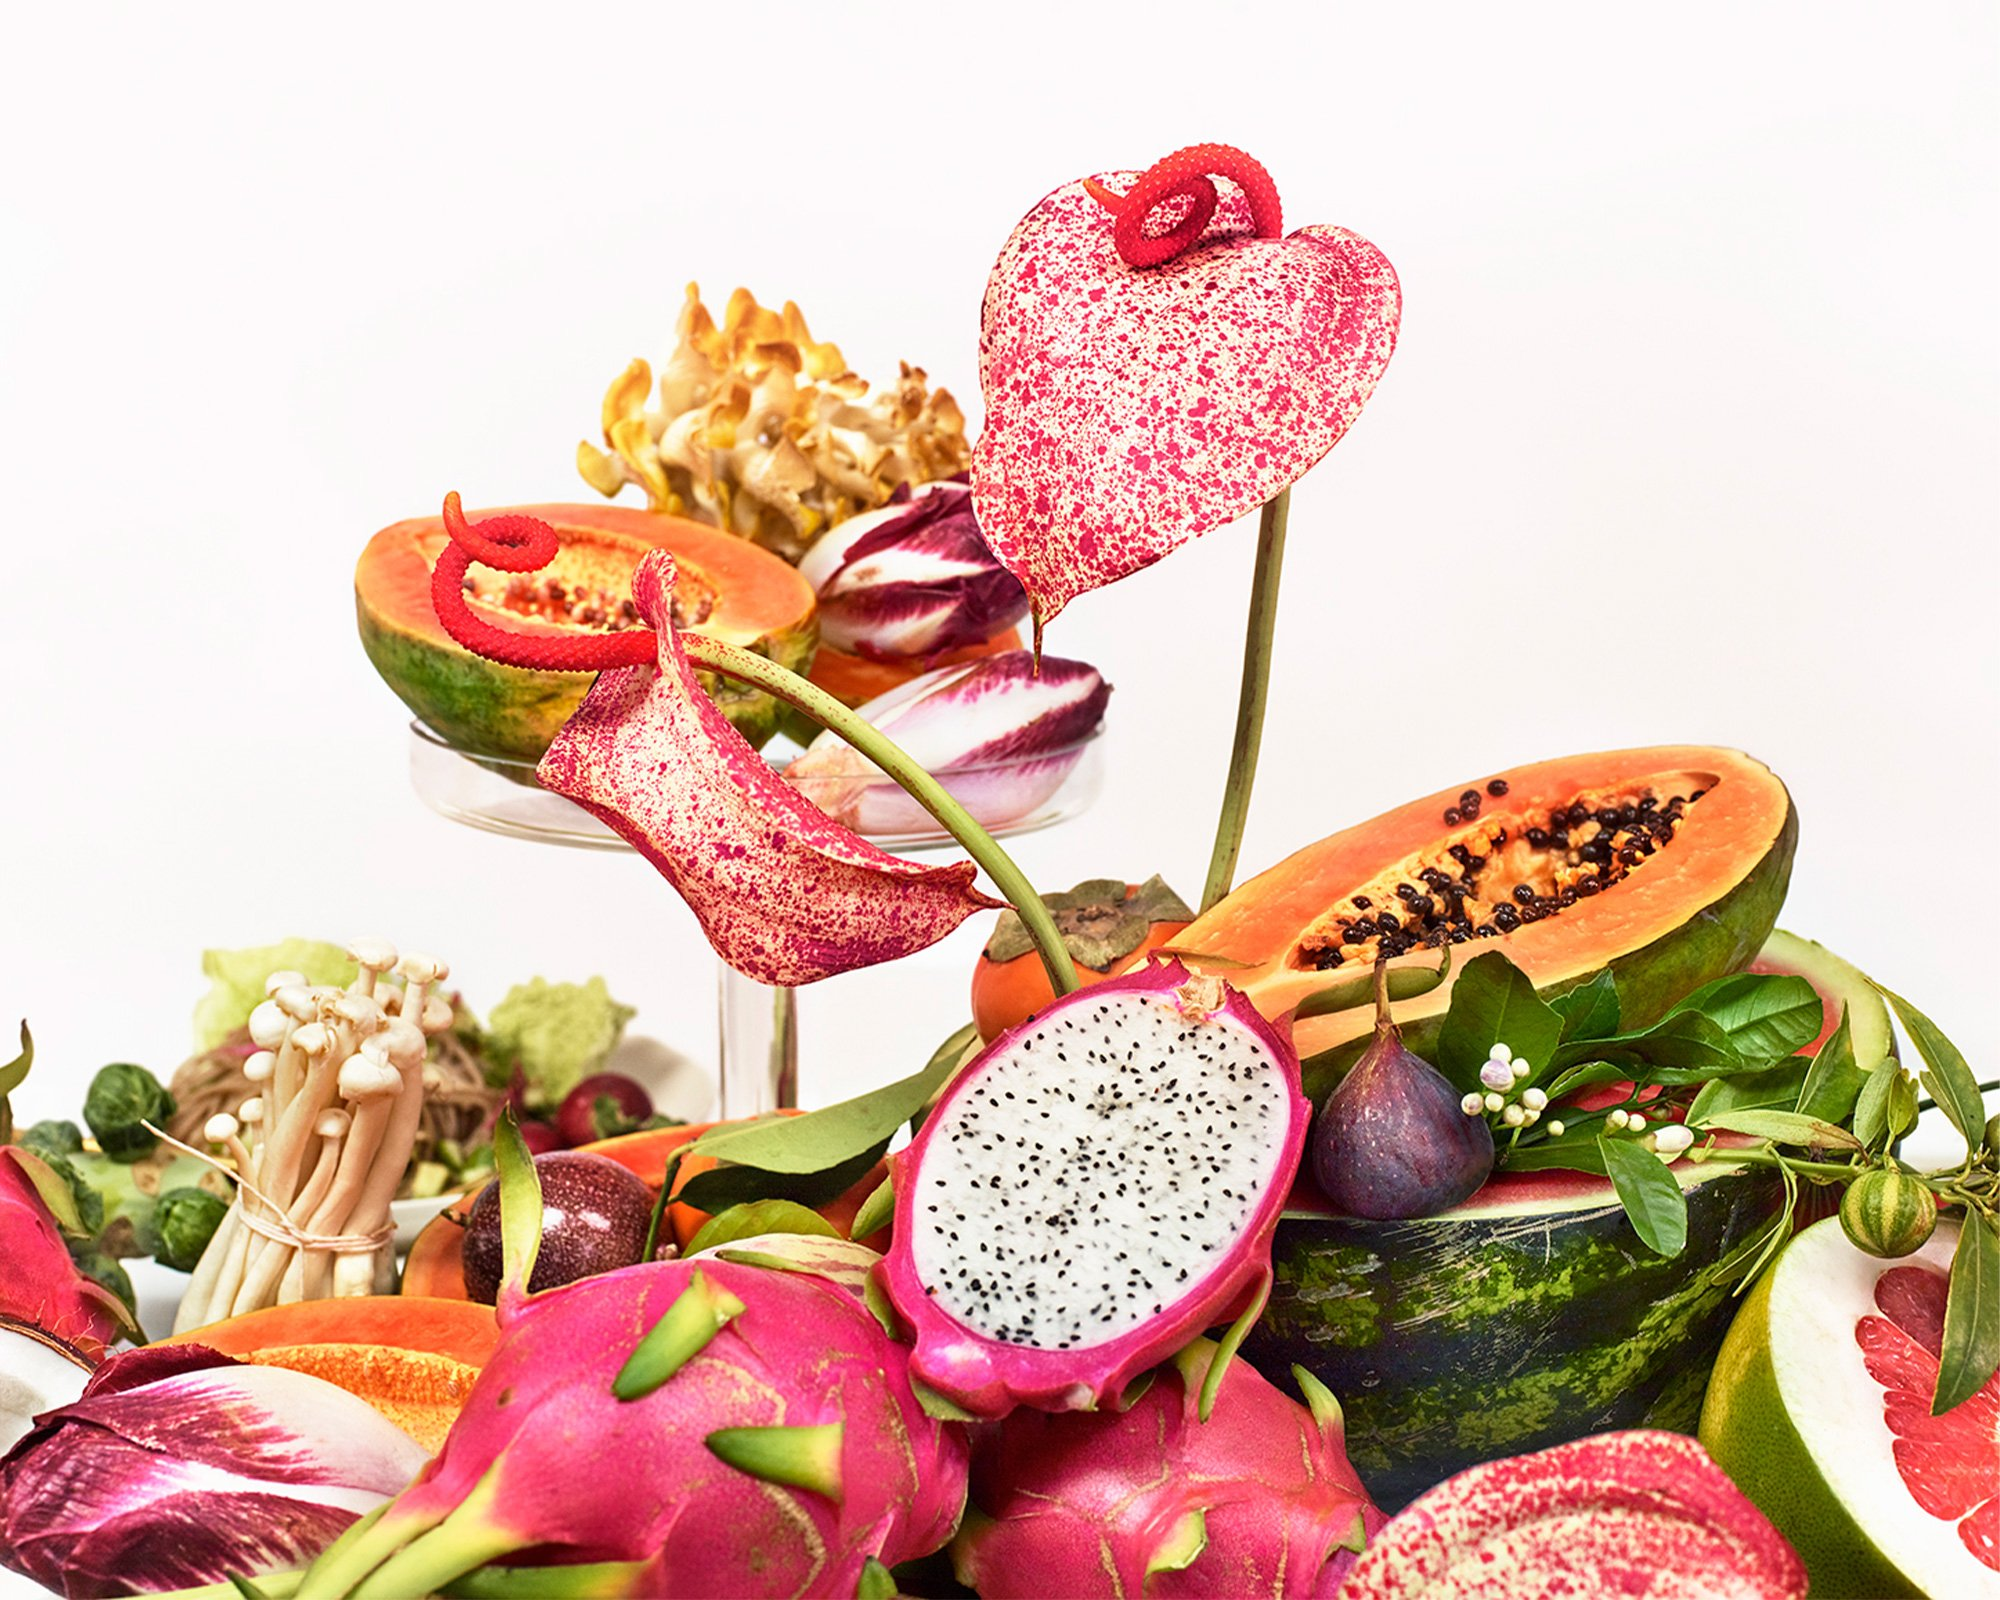 Close up of Sakara's table-scape. Dragonfruit, papaya, figs, and anthurium flowers help showcase clean and beautiful nutrition. Campaign Art direction by RoAndCo